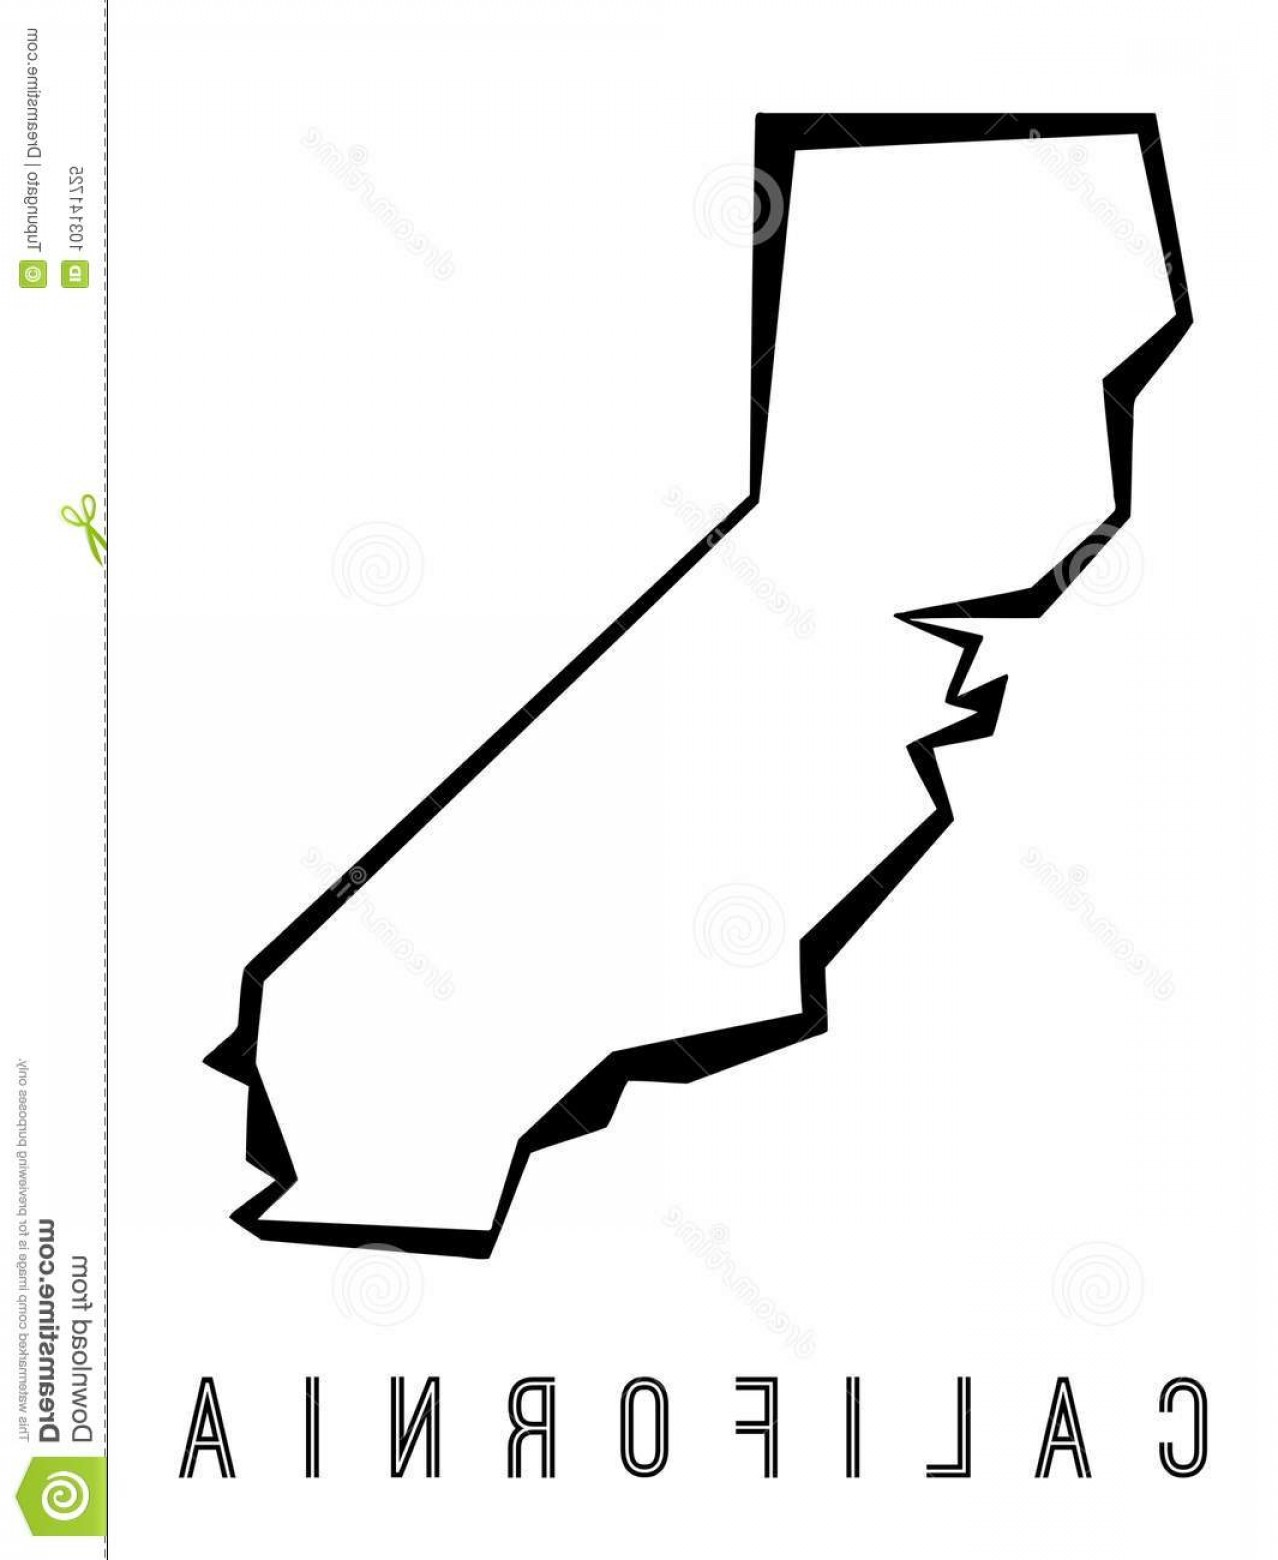 1278x1560 California State Outline Vector Arenawp